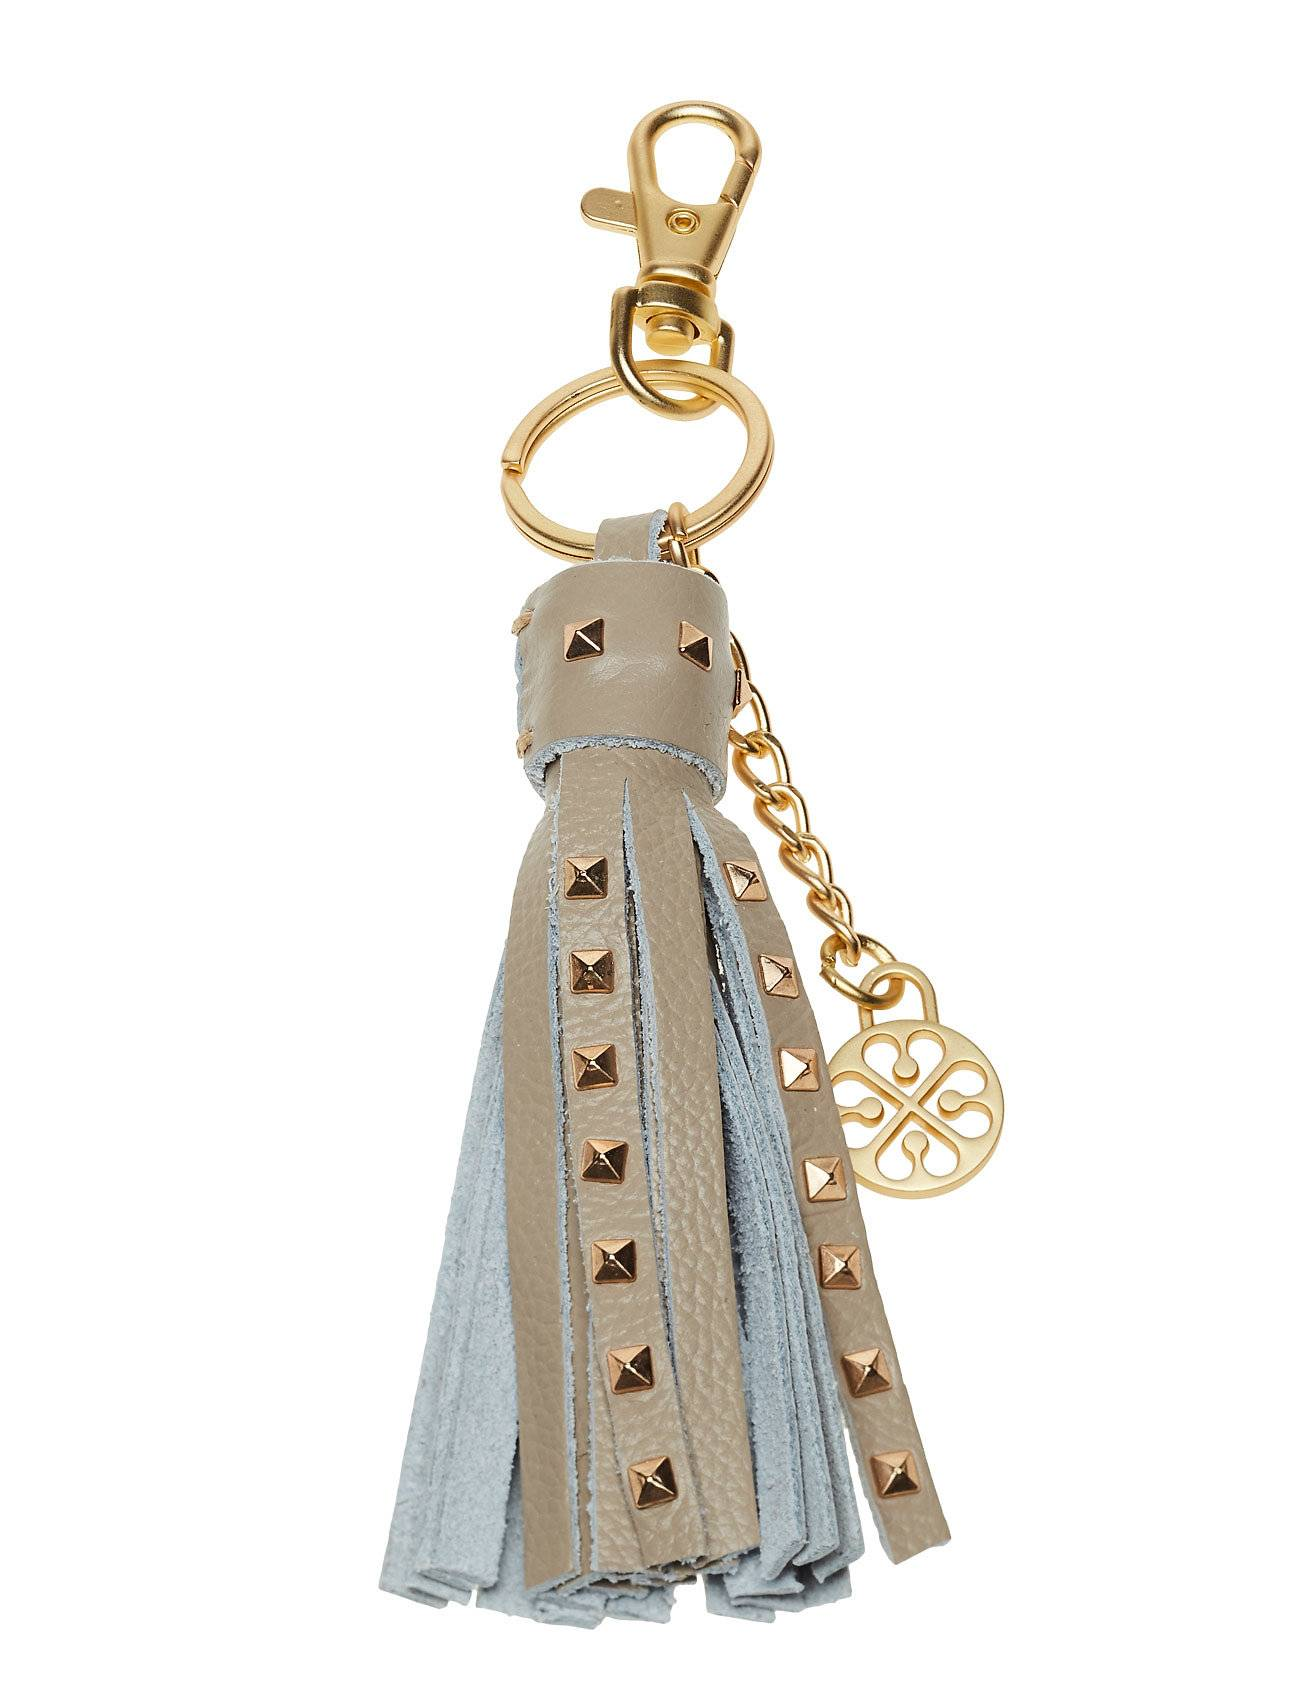 DAY et Day Connect Stud Key